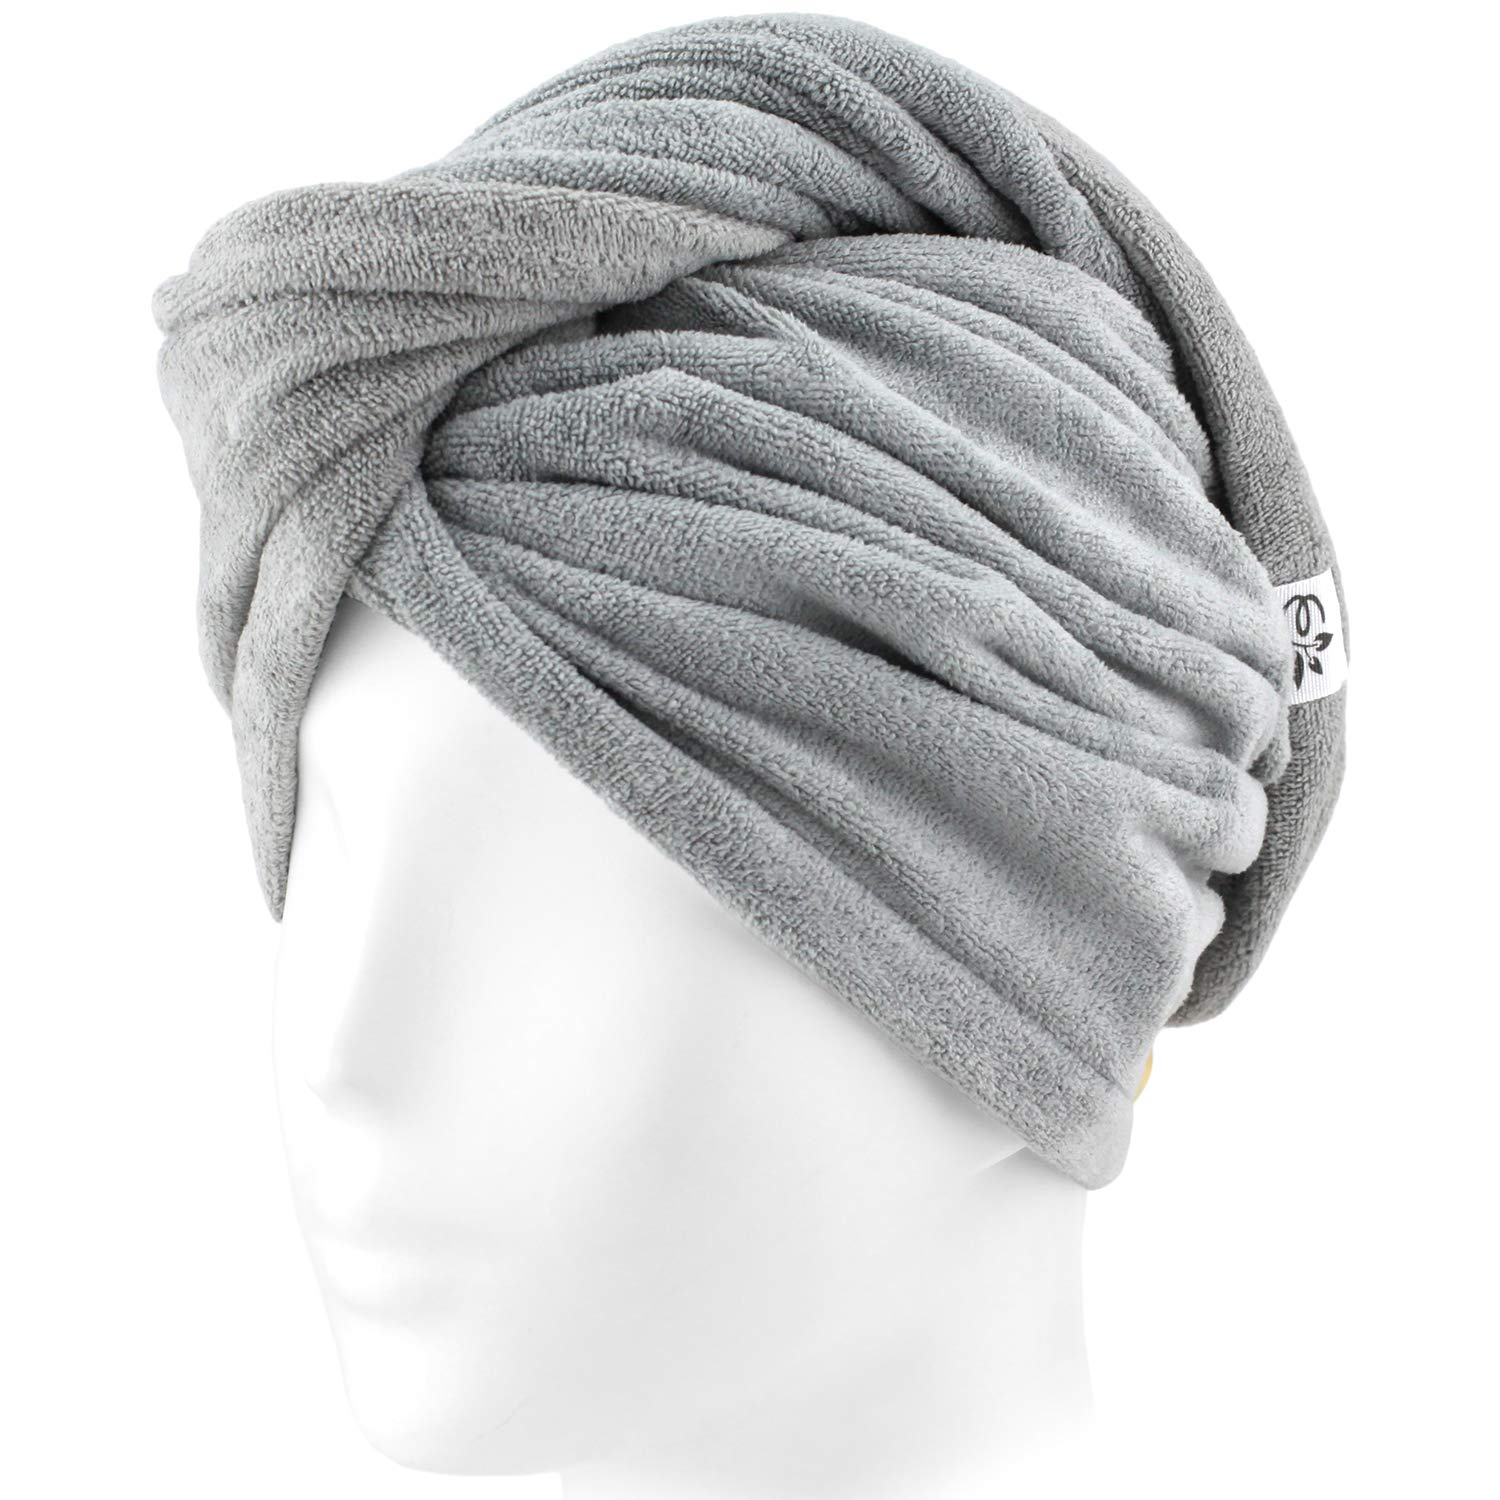 Evolatree Microfiber Hair Towel Wrap - Quick Magic Hair Dry Hat - Anti Frizz Products For Curly Hair Drying Towels - Neutral Gray by Evolatree (Image #5)